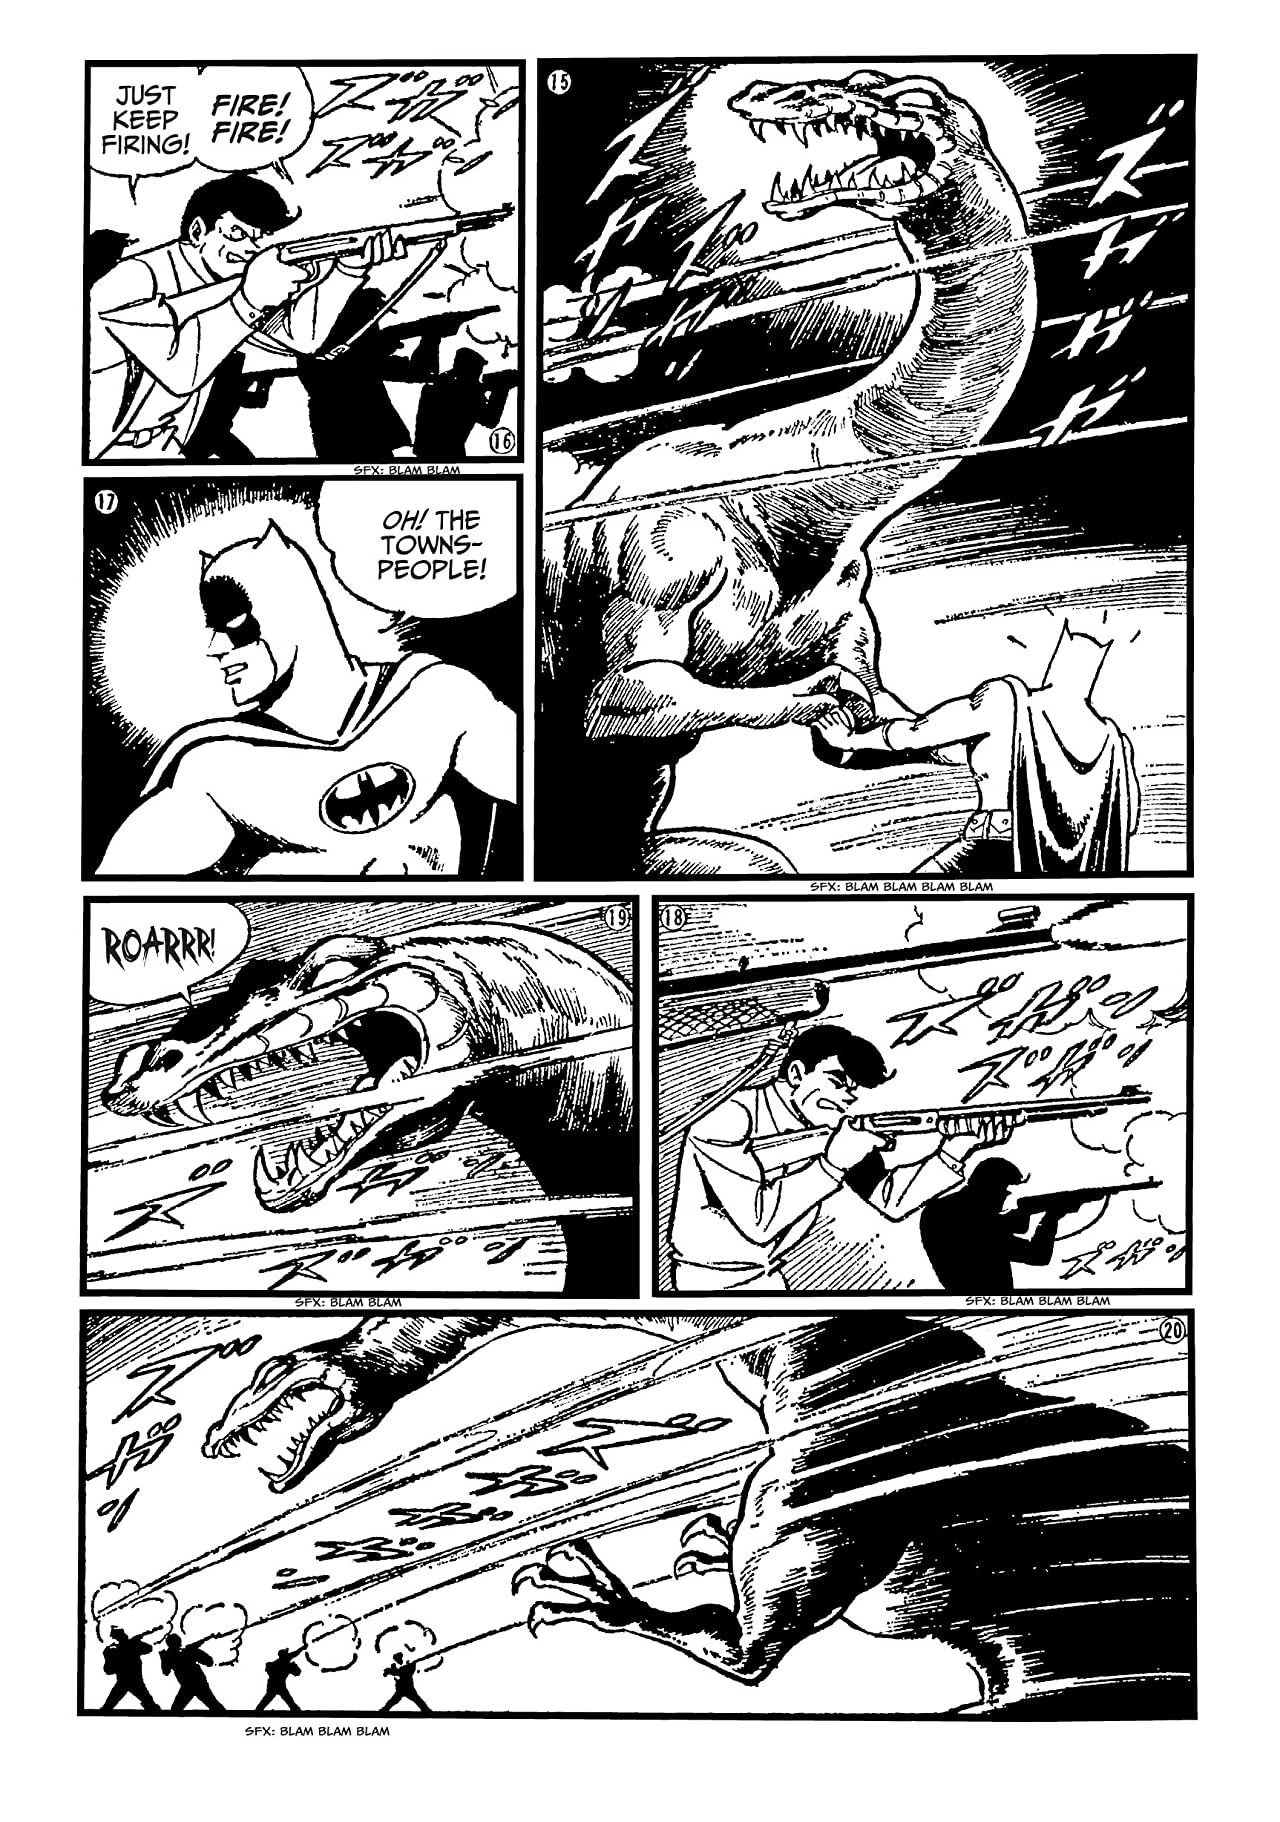 Batman: The Jiro Kuwata Batmanga #38